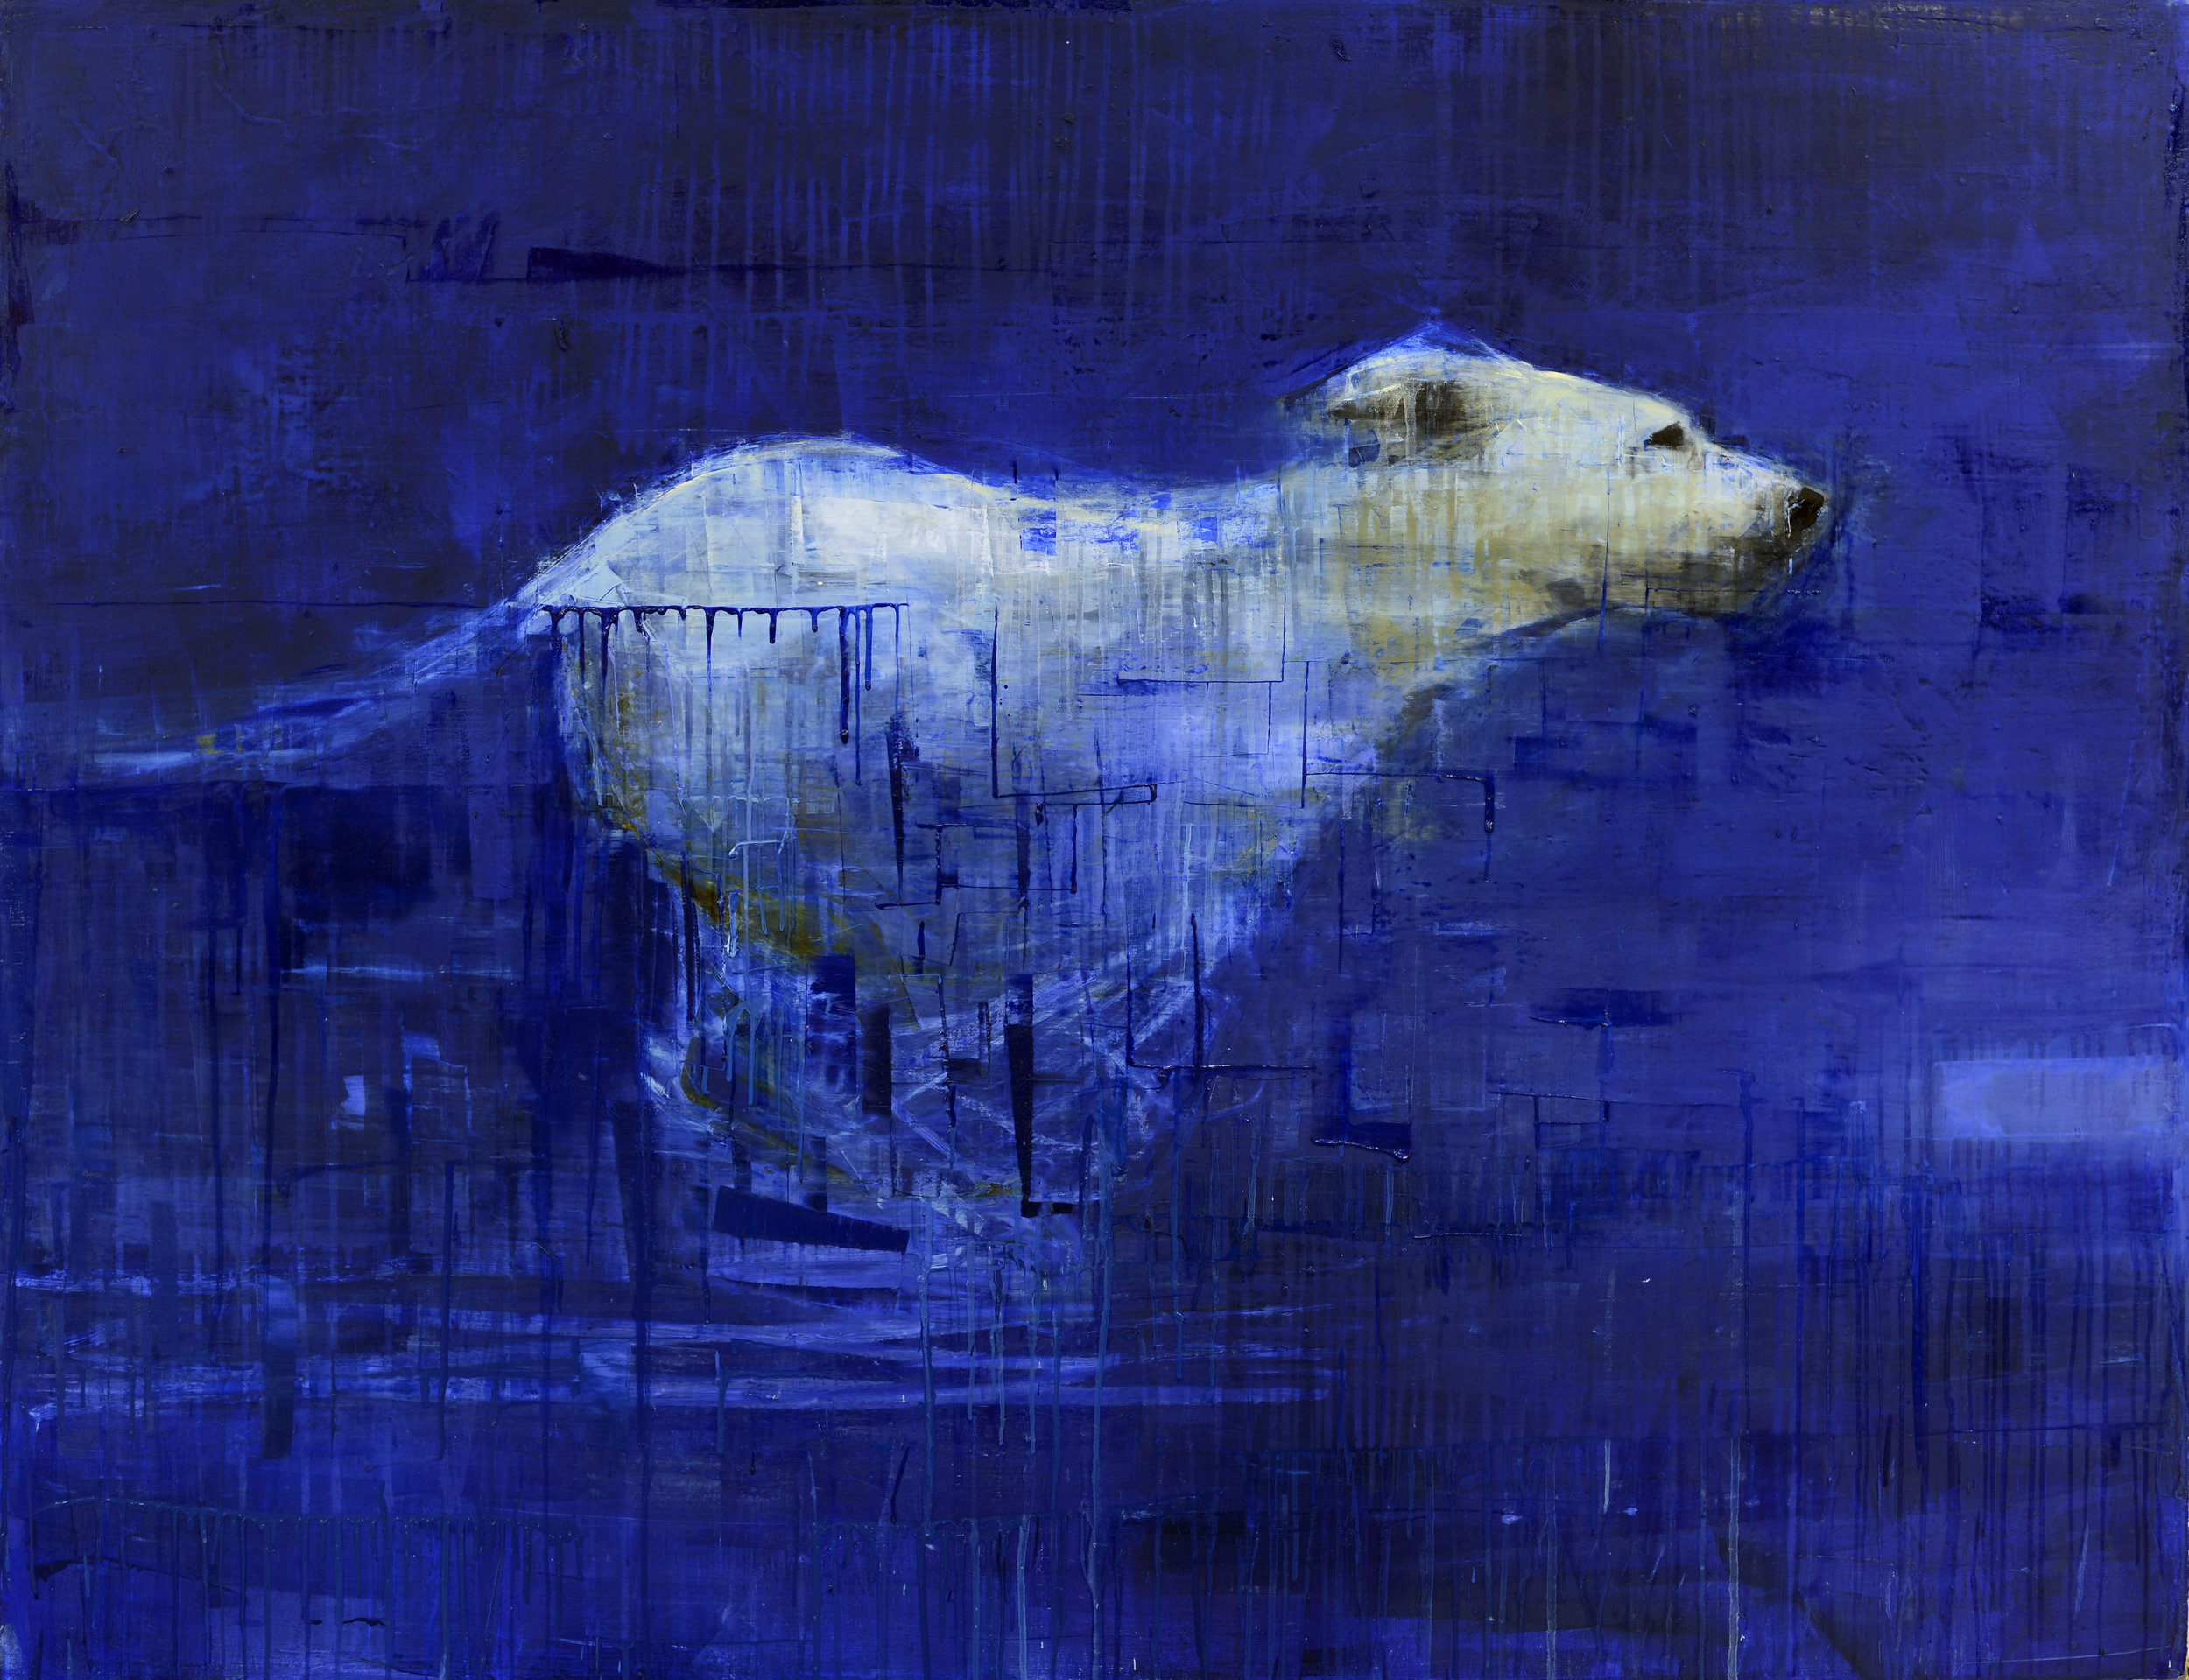 RUNNING DOG (DEEP BLUE YONDER)   -PRIVATE COLLECTION-  54 x 70 inches  oil and wax on linen